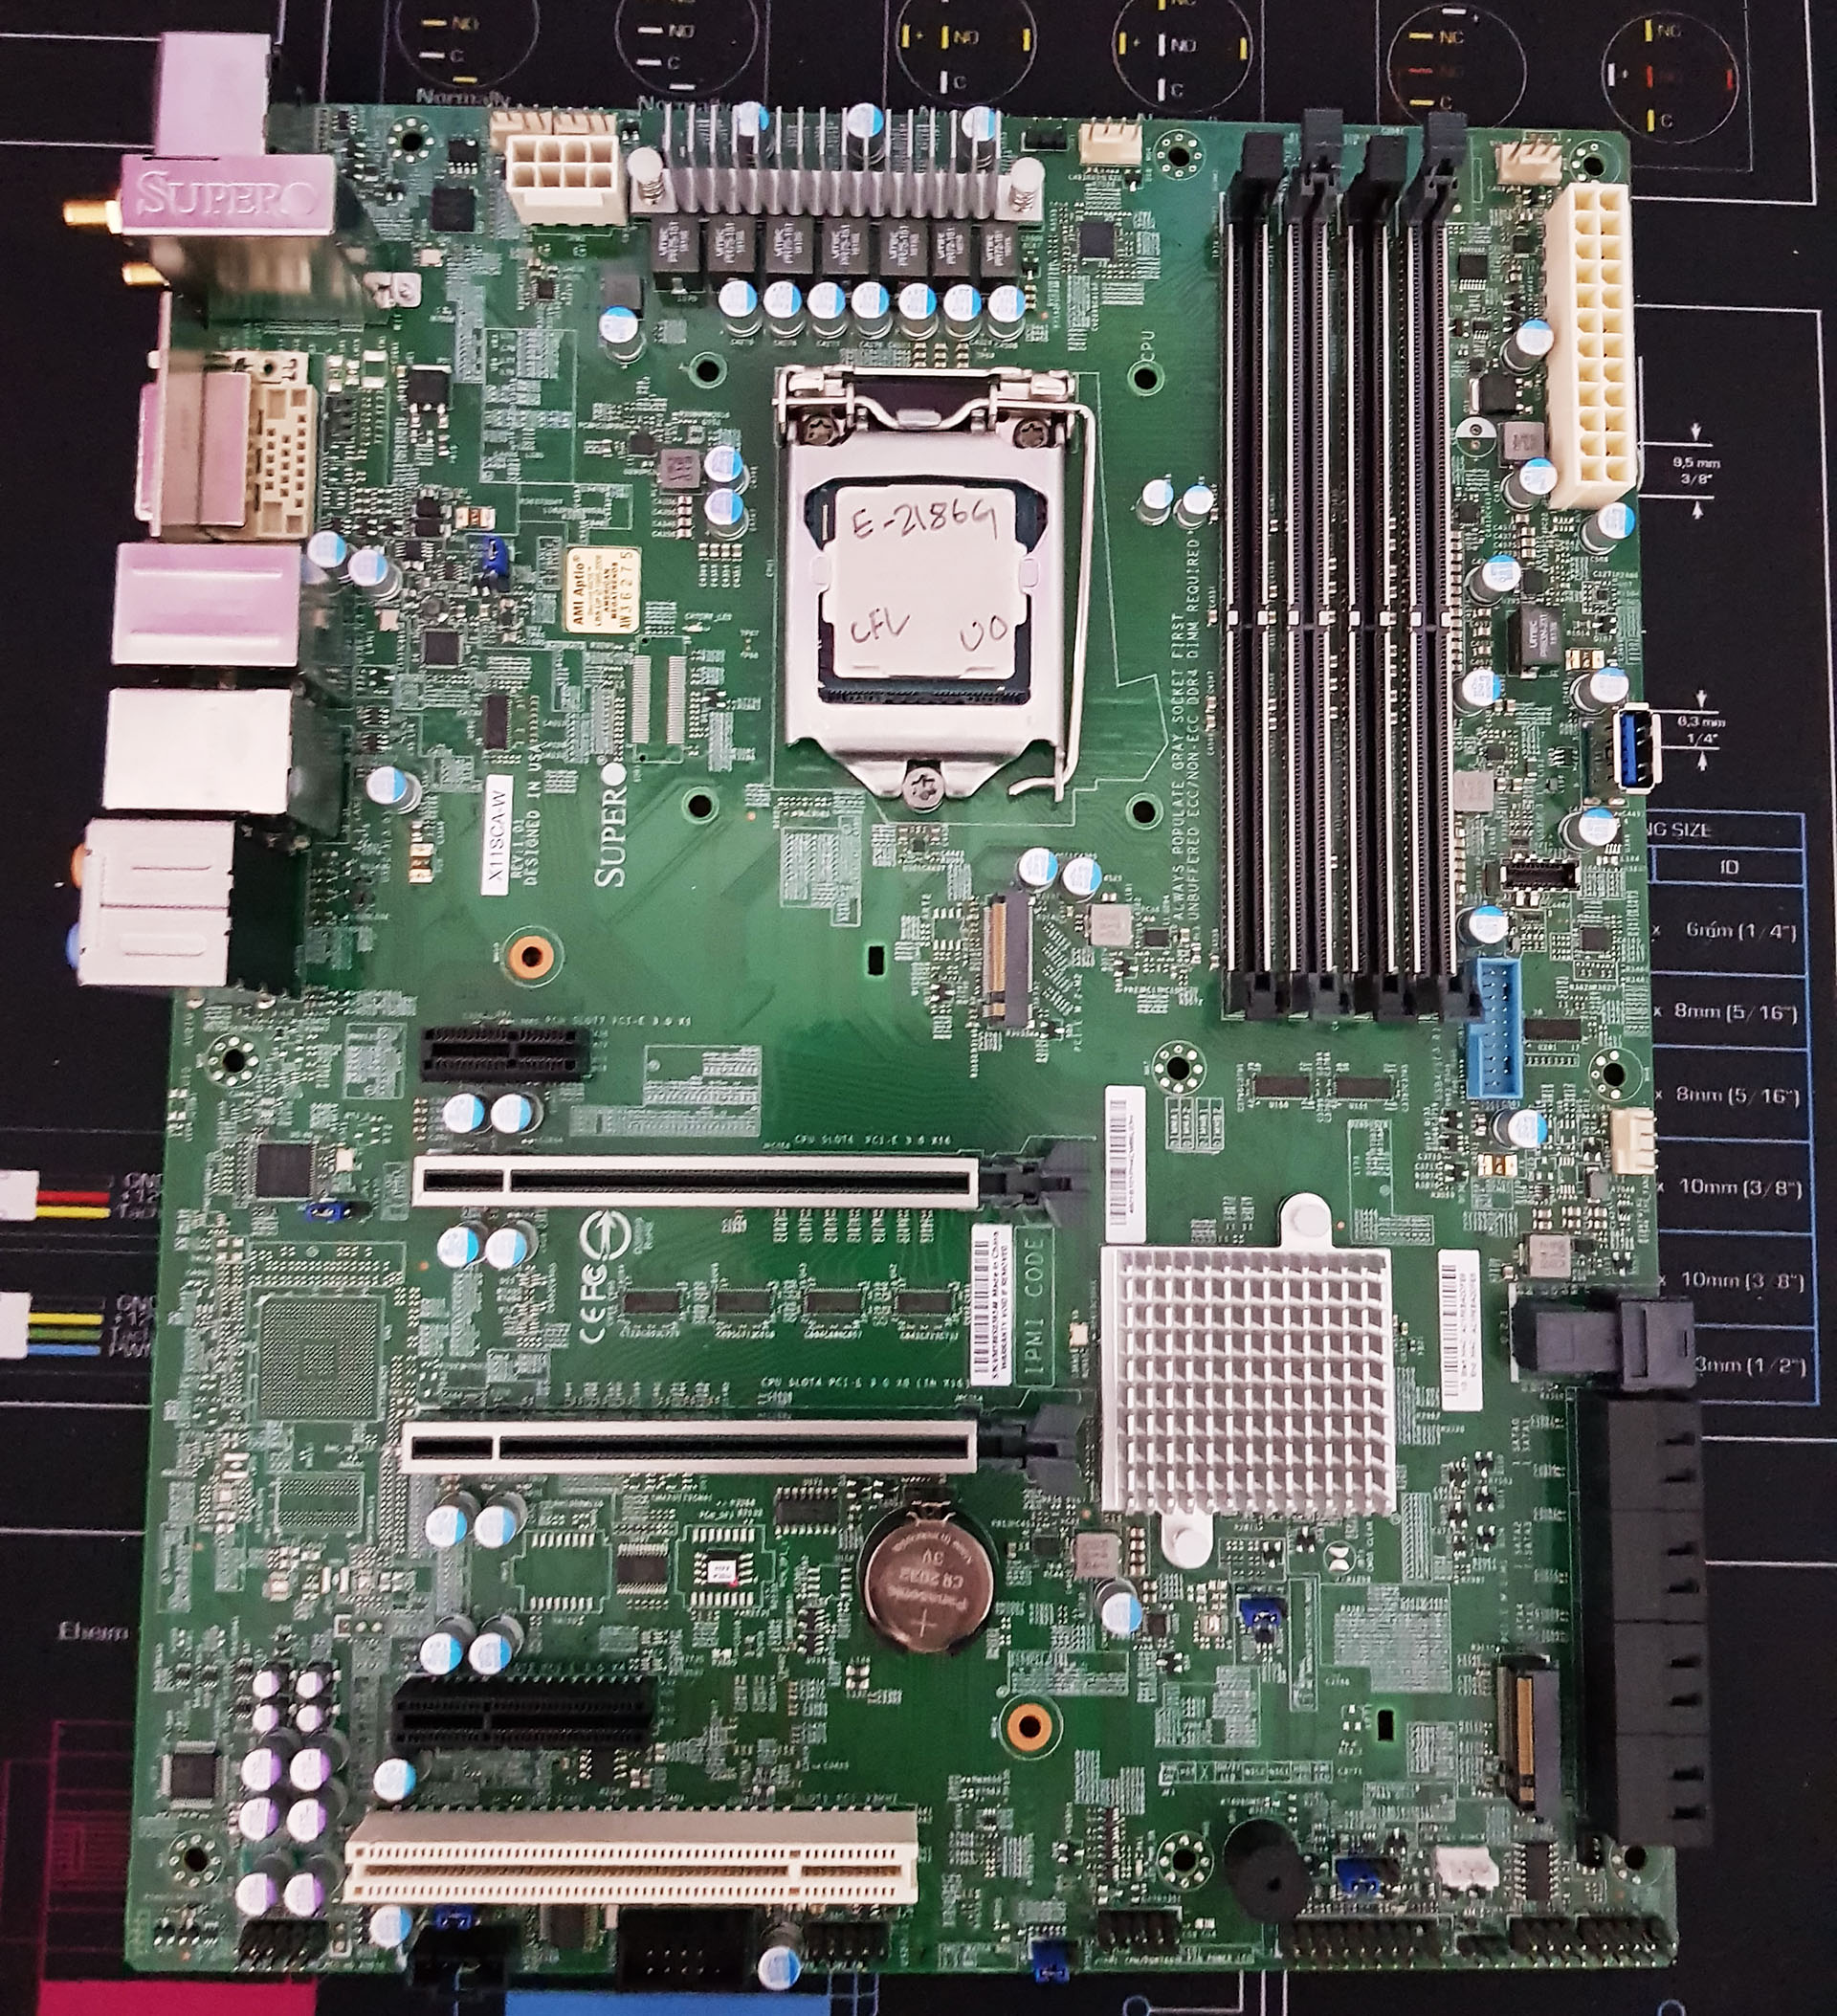 Visual Inspection - The Supermicro X11SCA-W Motherboard